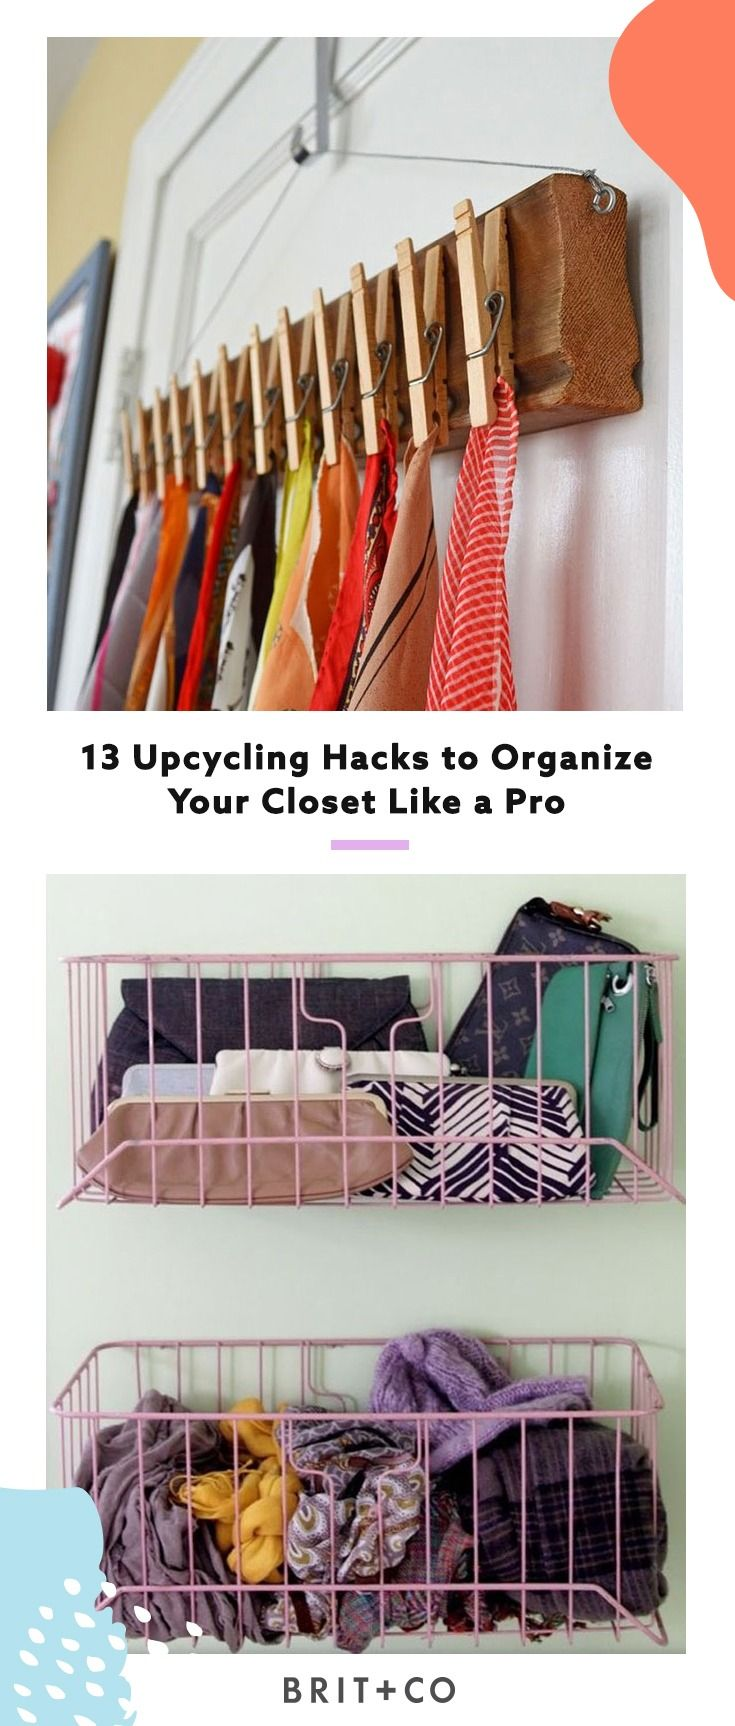 13 Upcycling Hacks To Organize Your Closet Like A Pro.